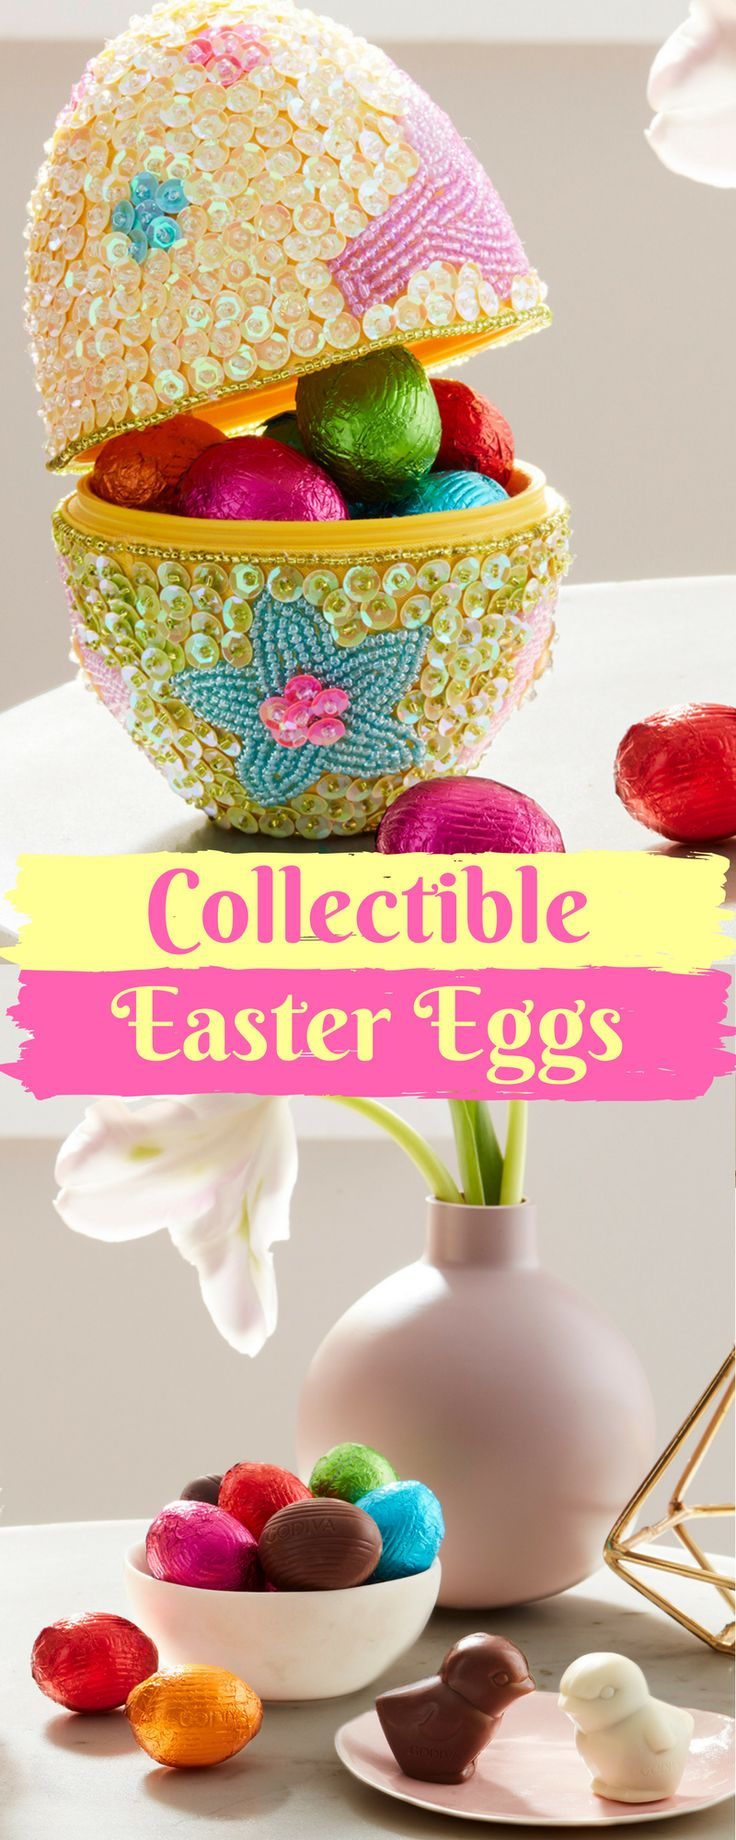 55 best our easter delights images on pinterest chocolate gifts filled with 12 assorted chocolate easter eggs our collectible beaded eater egg is a delightful negle Gallery